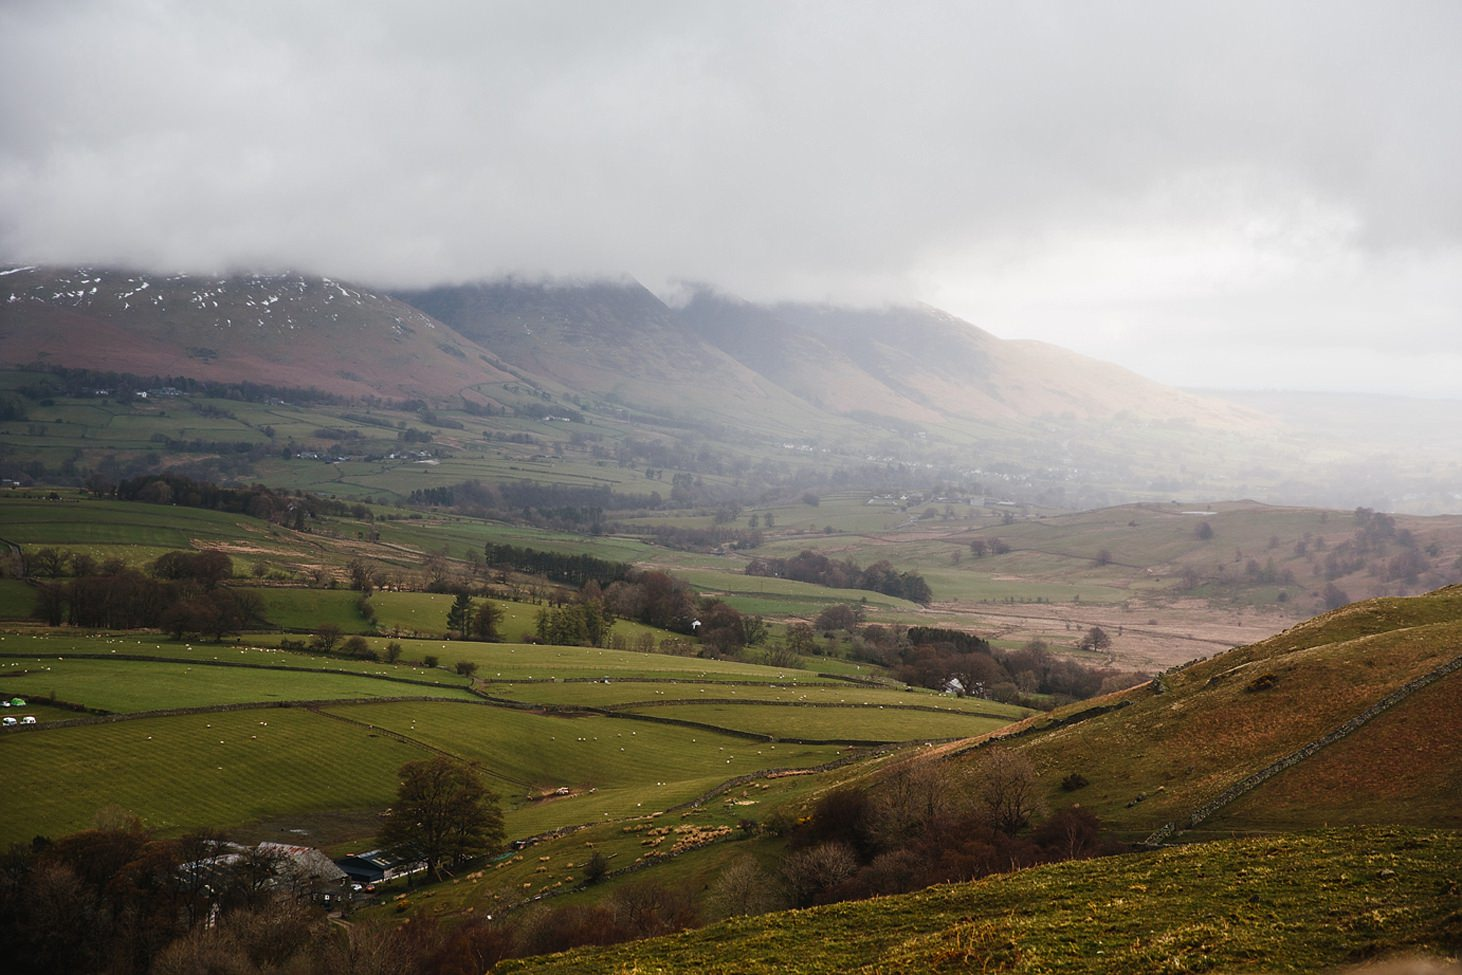 lake district travel photography view of fells in rain